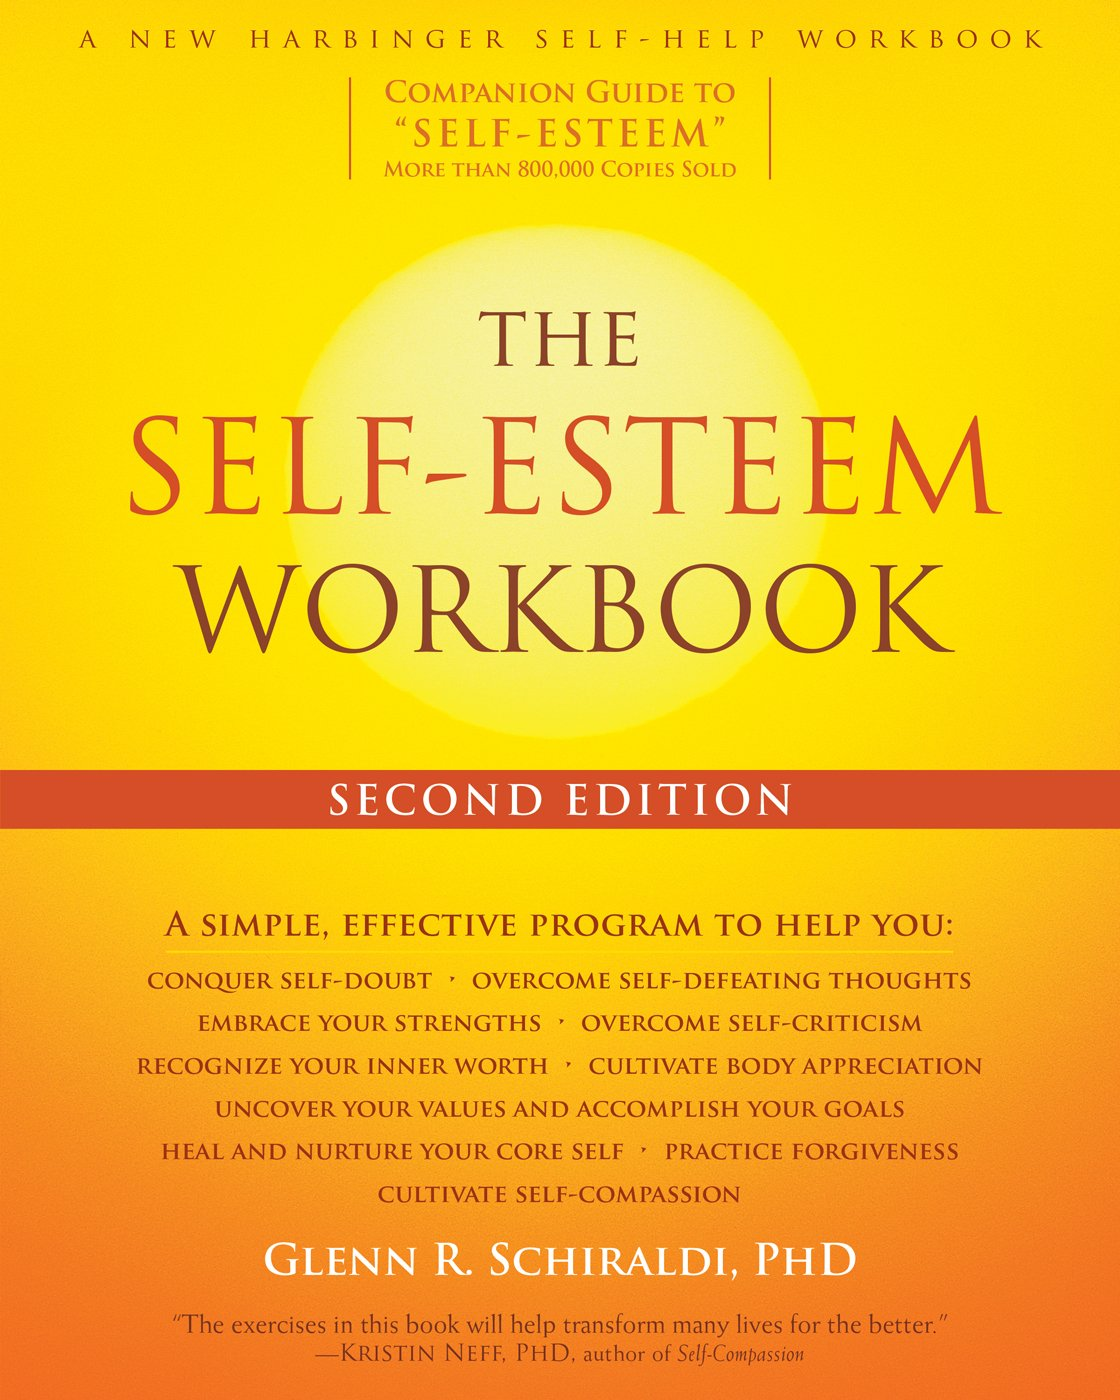 The Self-Esteem Workbook: Glenn R. Schiraldi PhD: 9781626255937:  Amazon.com: Books